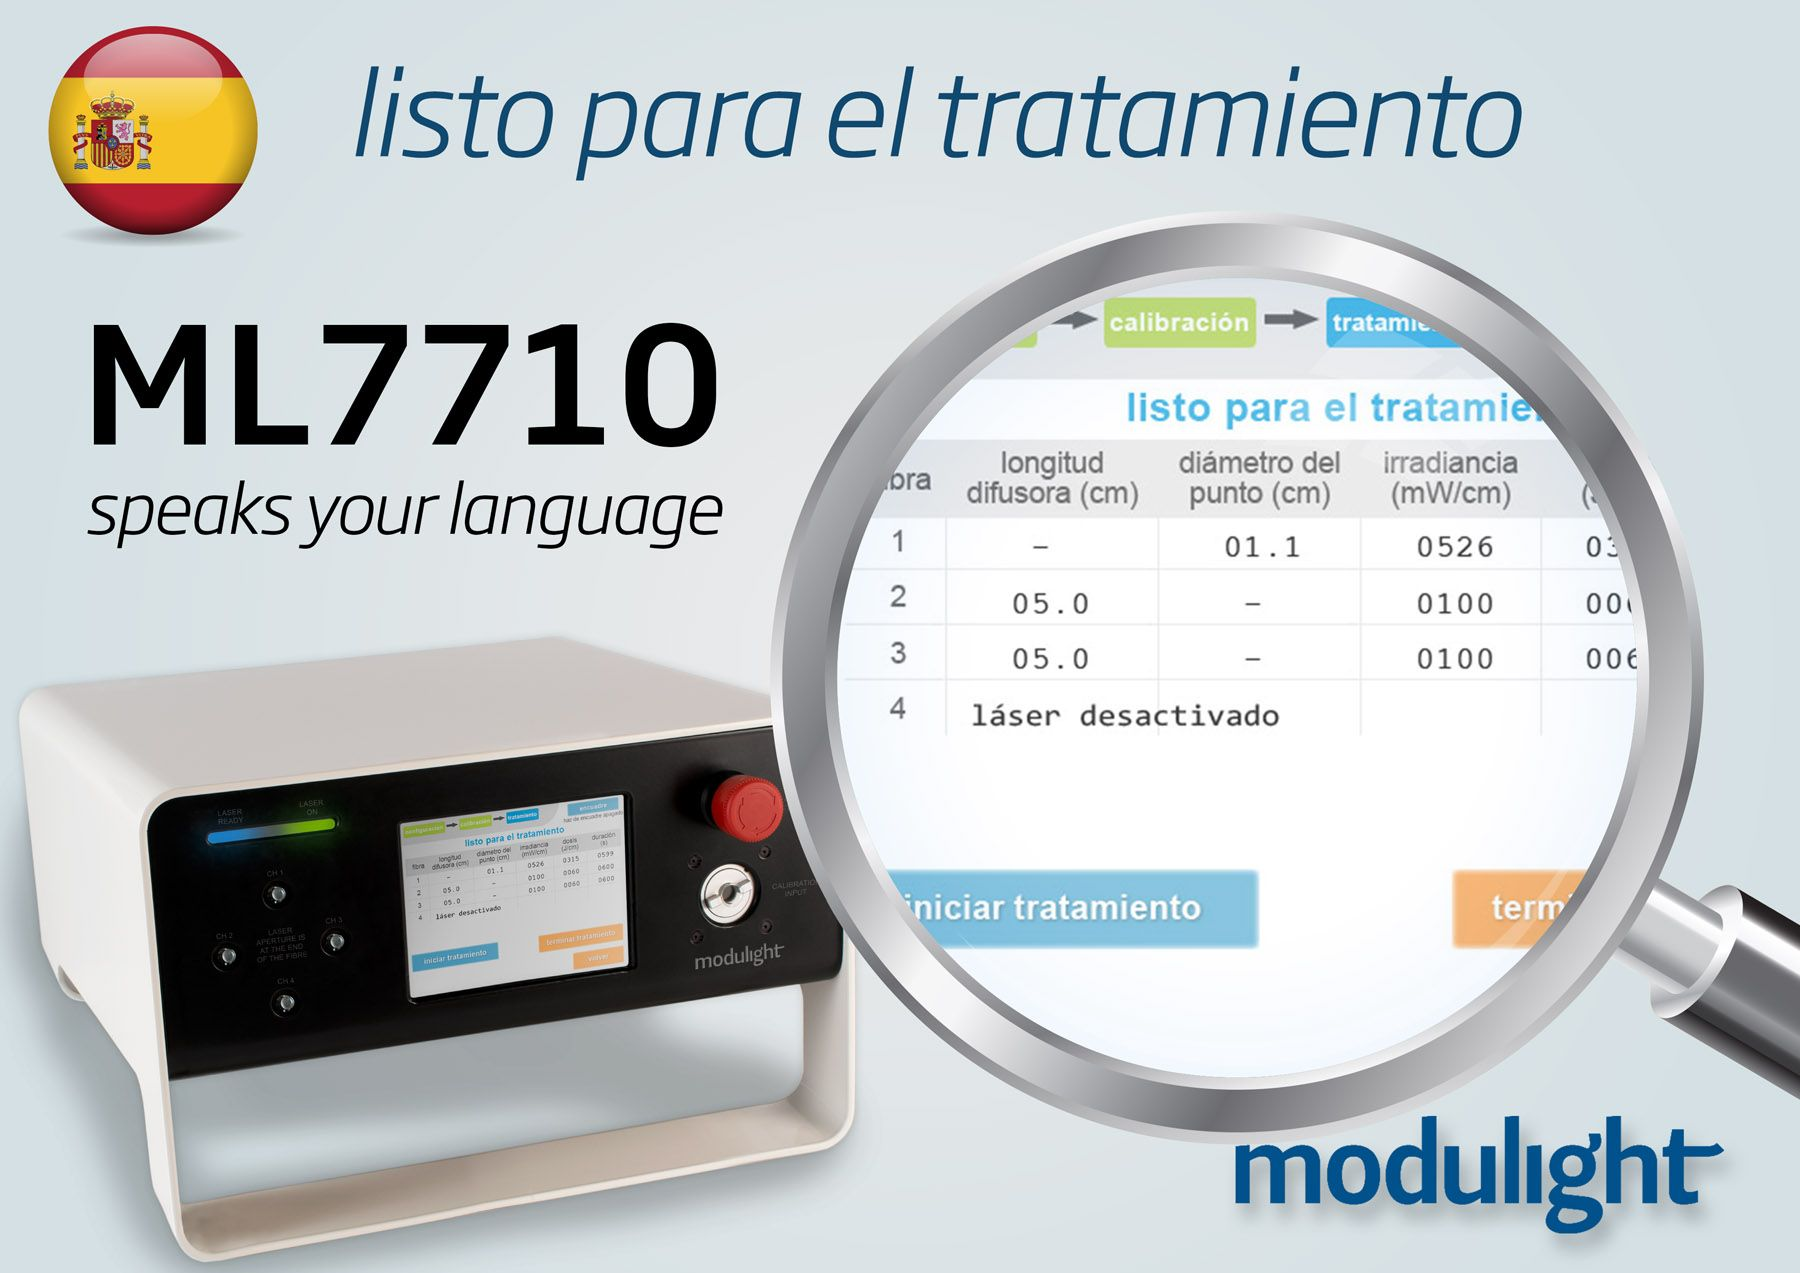 User interface now available in Spanish!